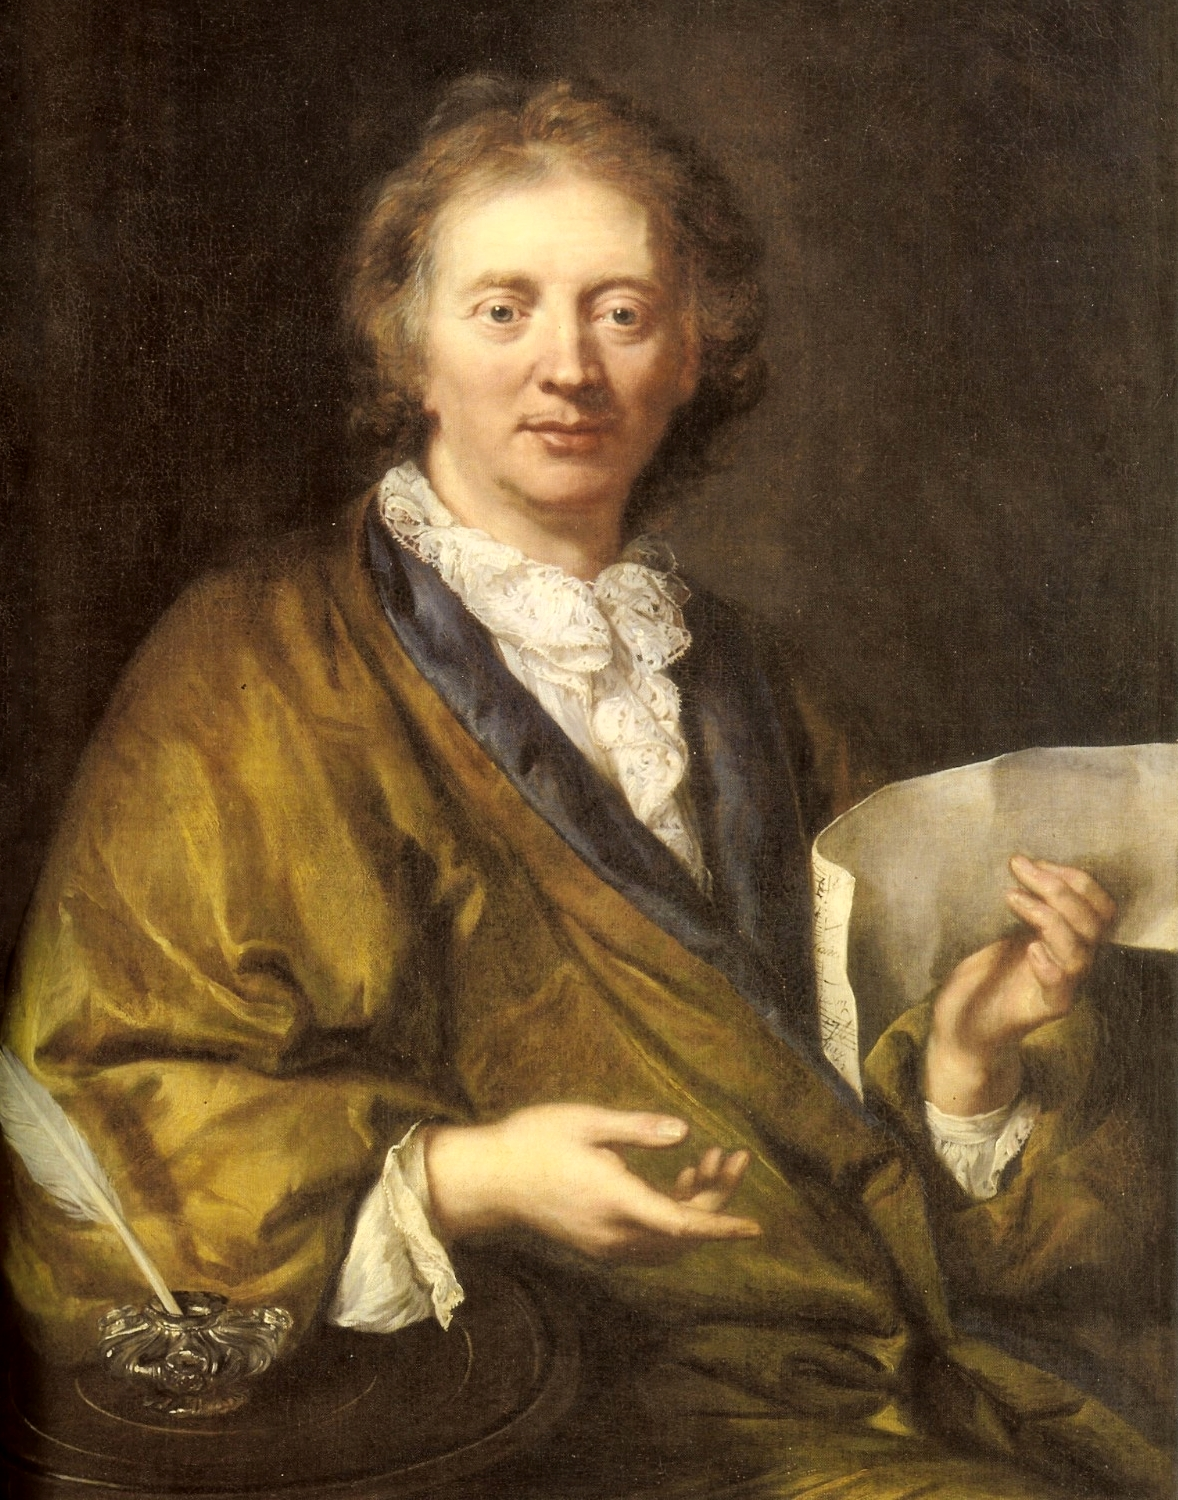 https://upload.wikimedia.org/wikipedia/commons/c/c4/Francois_Couperin_2.jpg